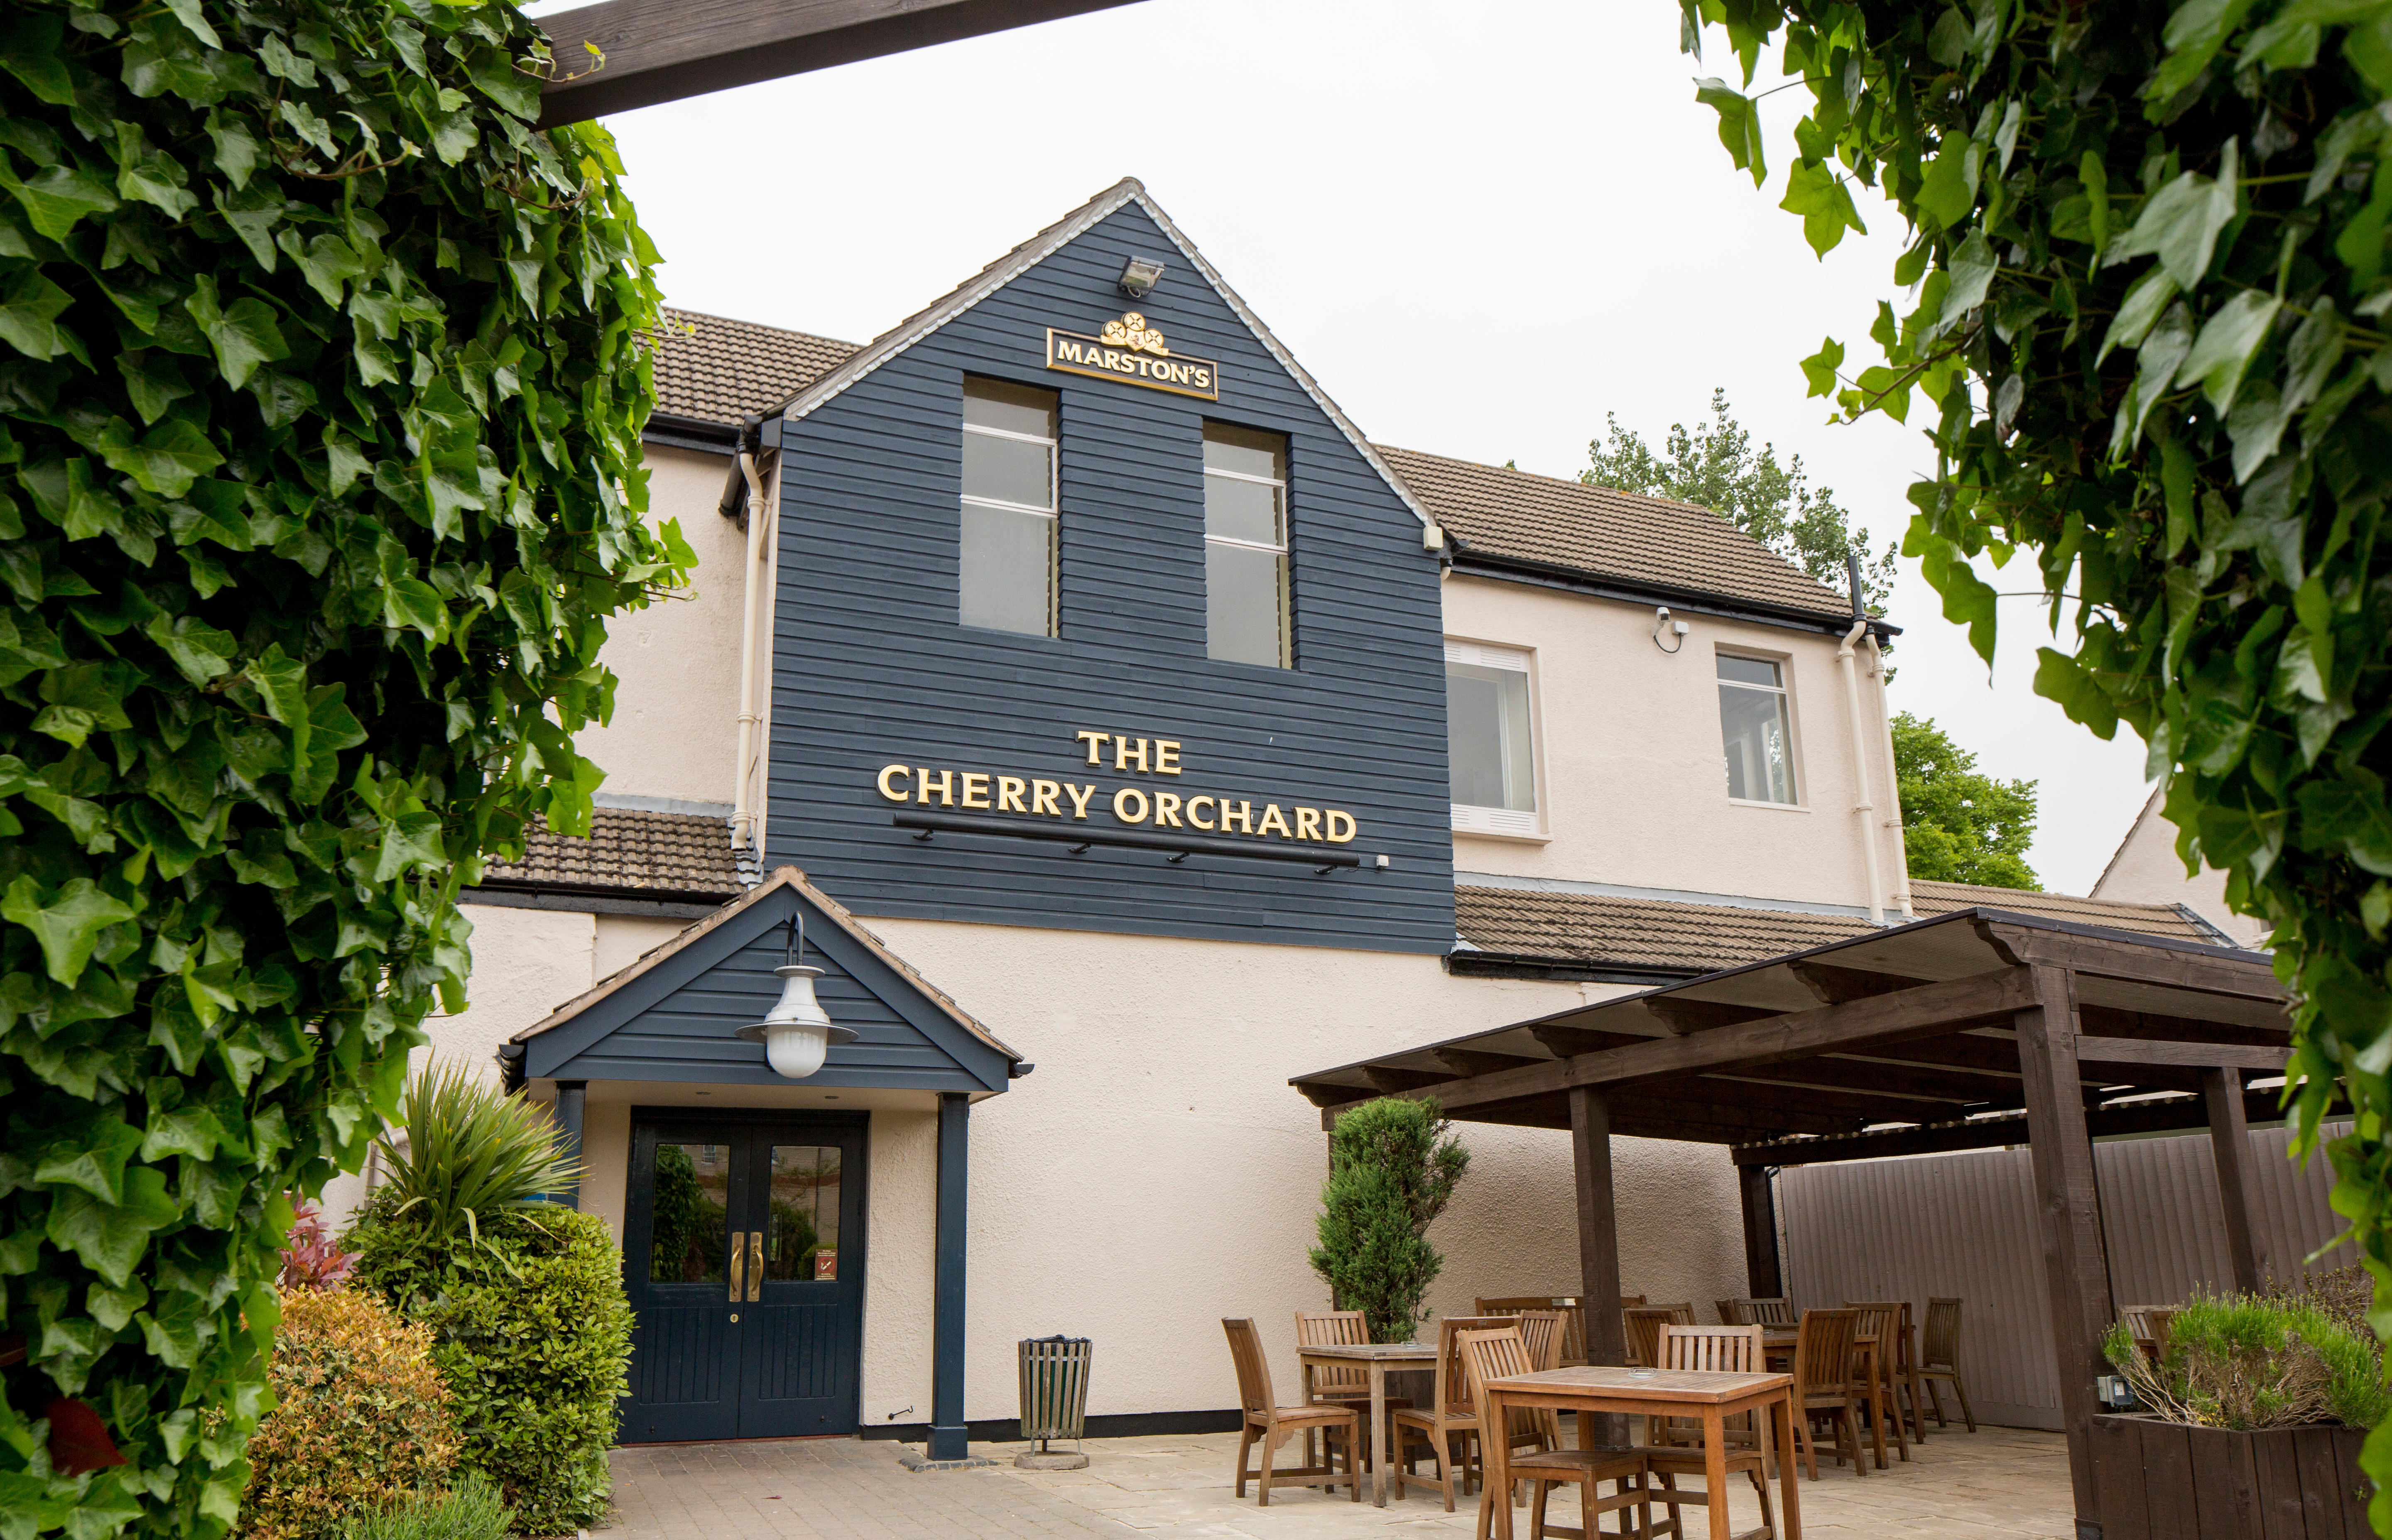 Cherry Orchard Barry - Barry, South Glamorgan CF62 8EH - 01446 700580 | ShowMeLocal.com